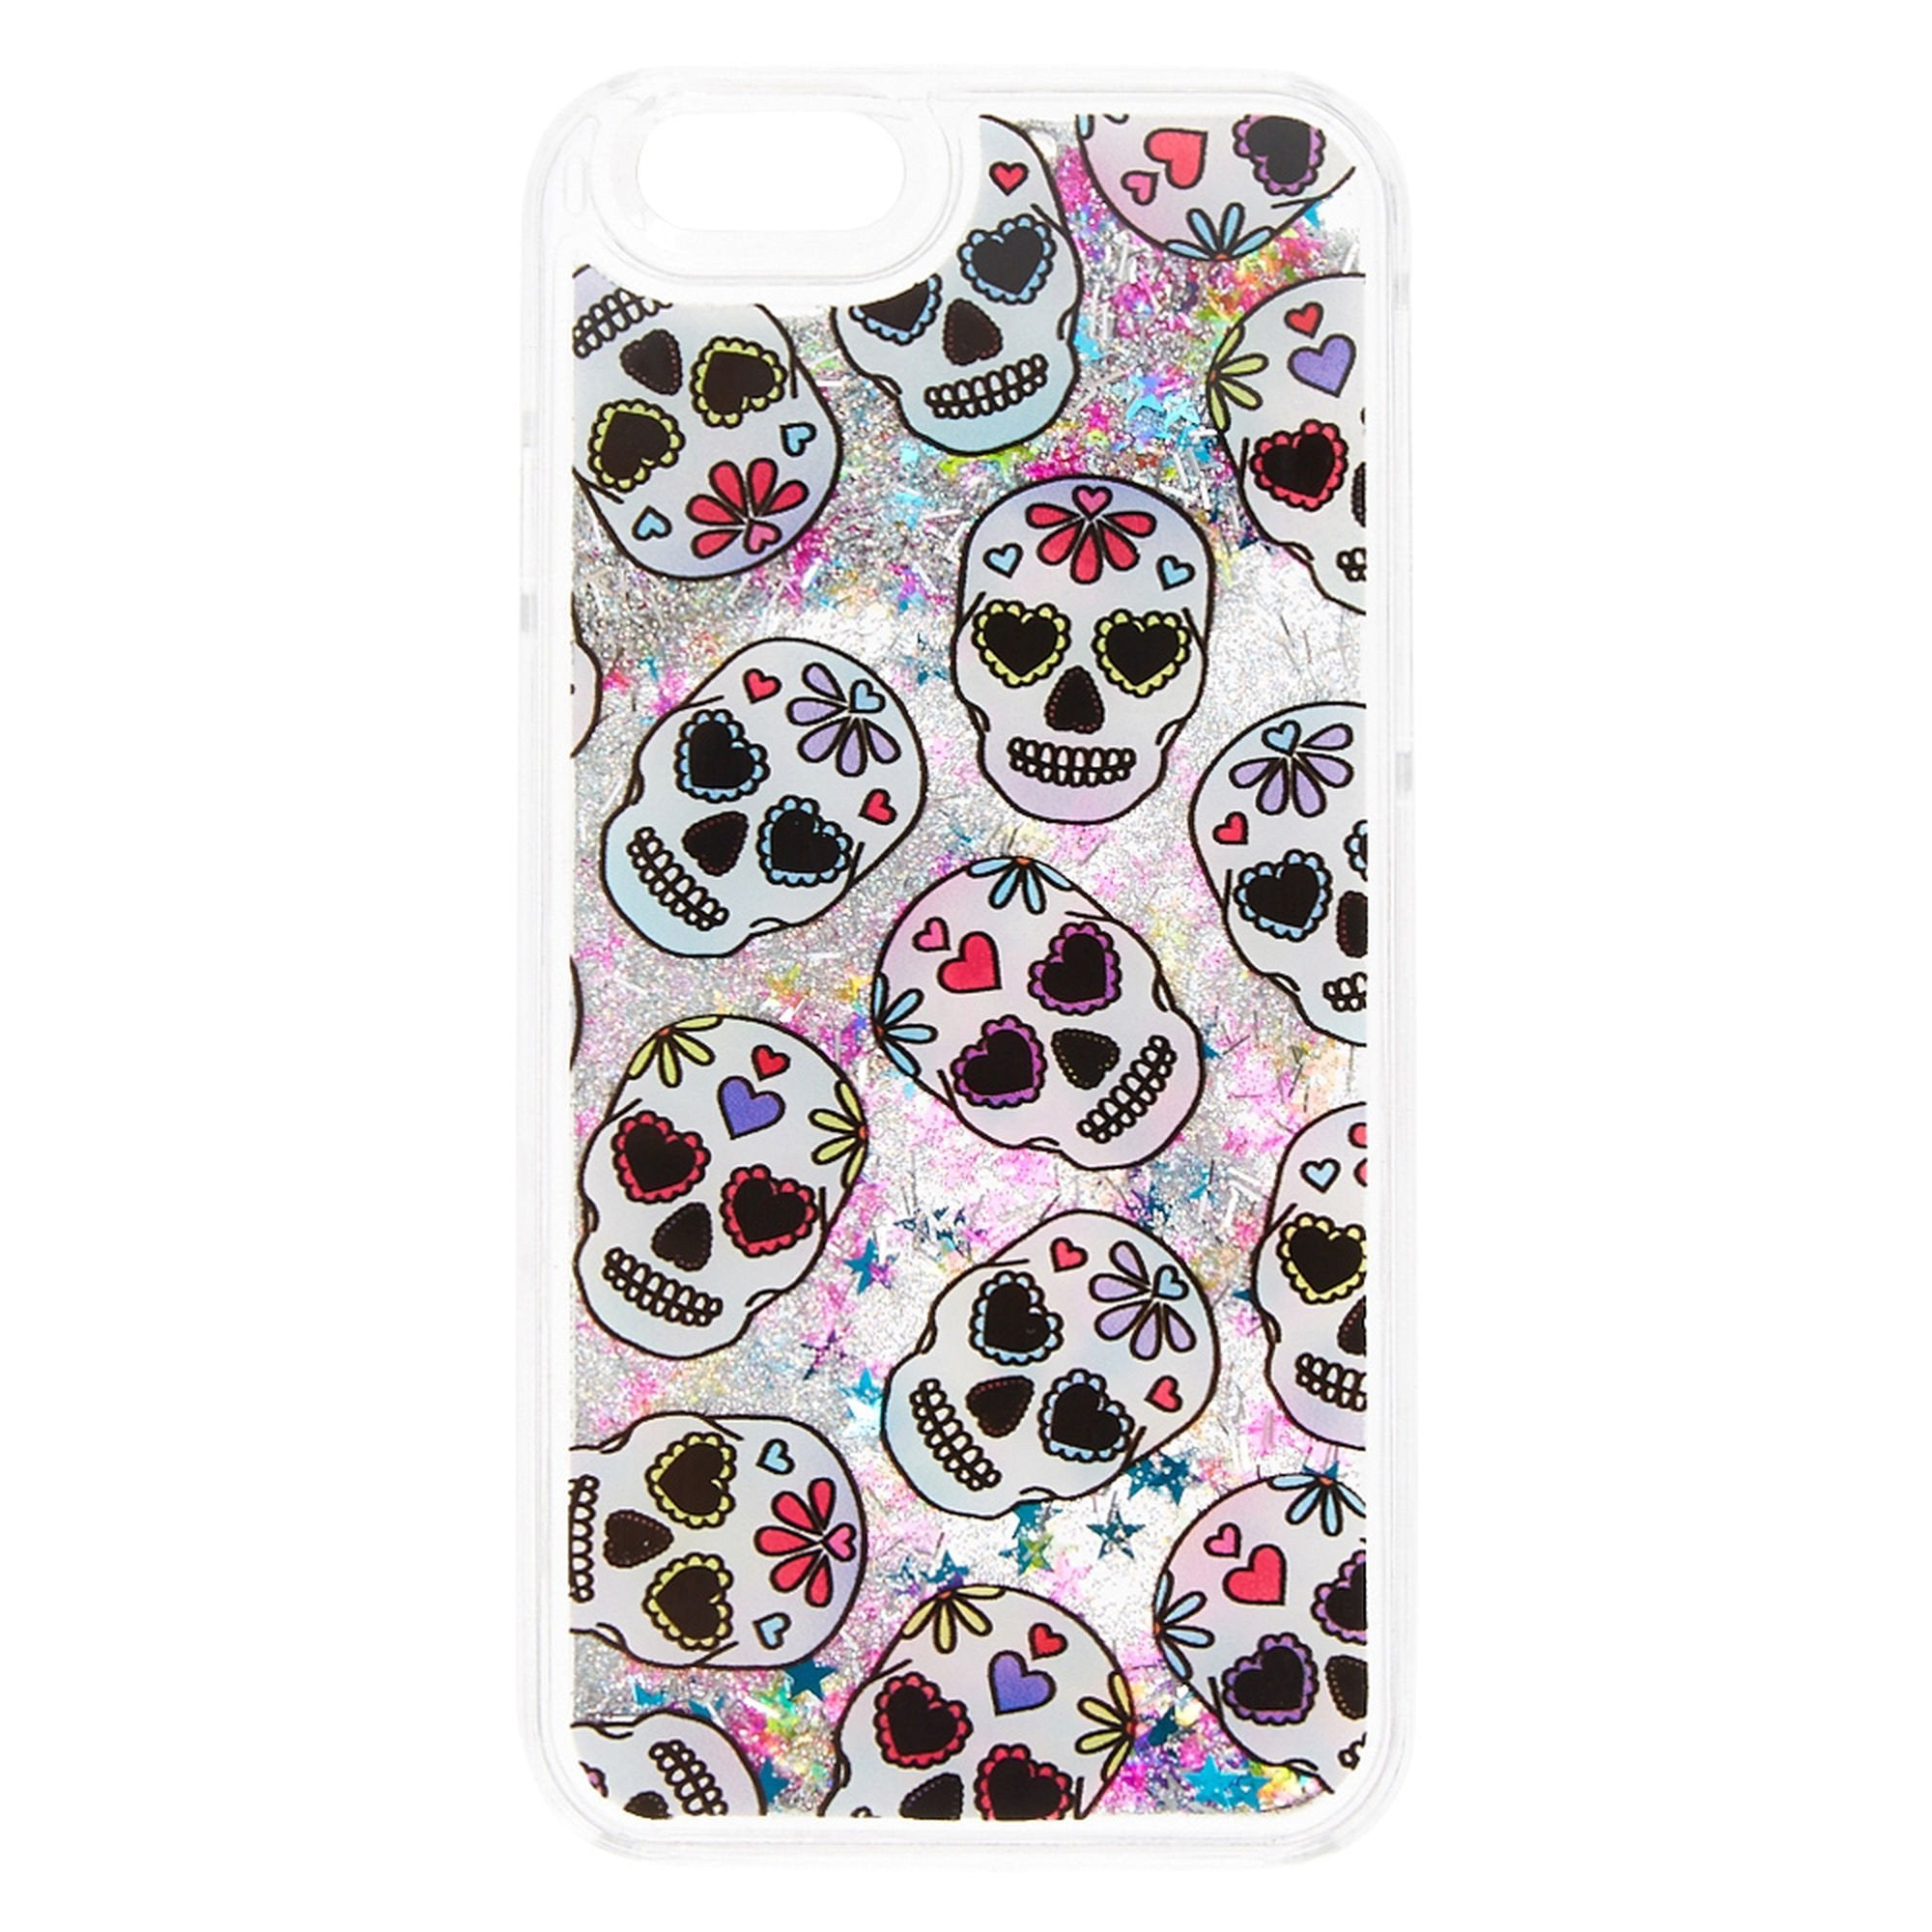 Pastel Sugar Skull Liquid Fill Phone Case